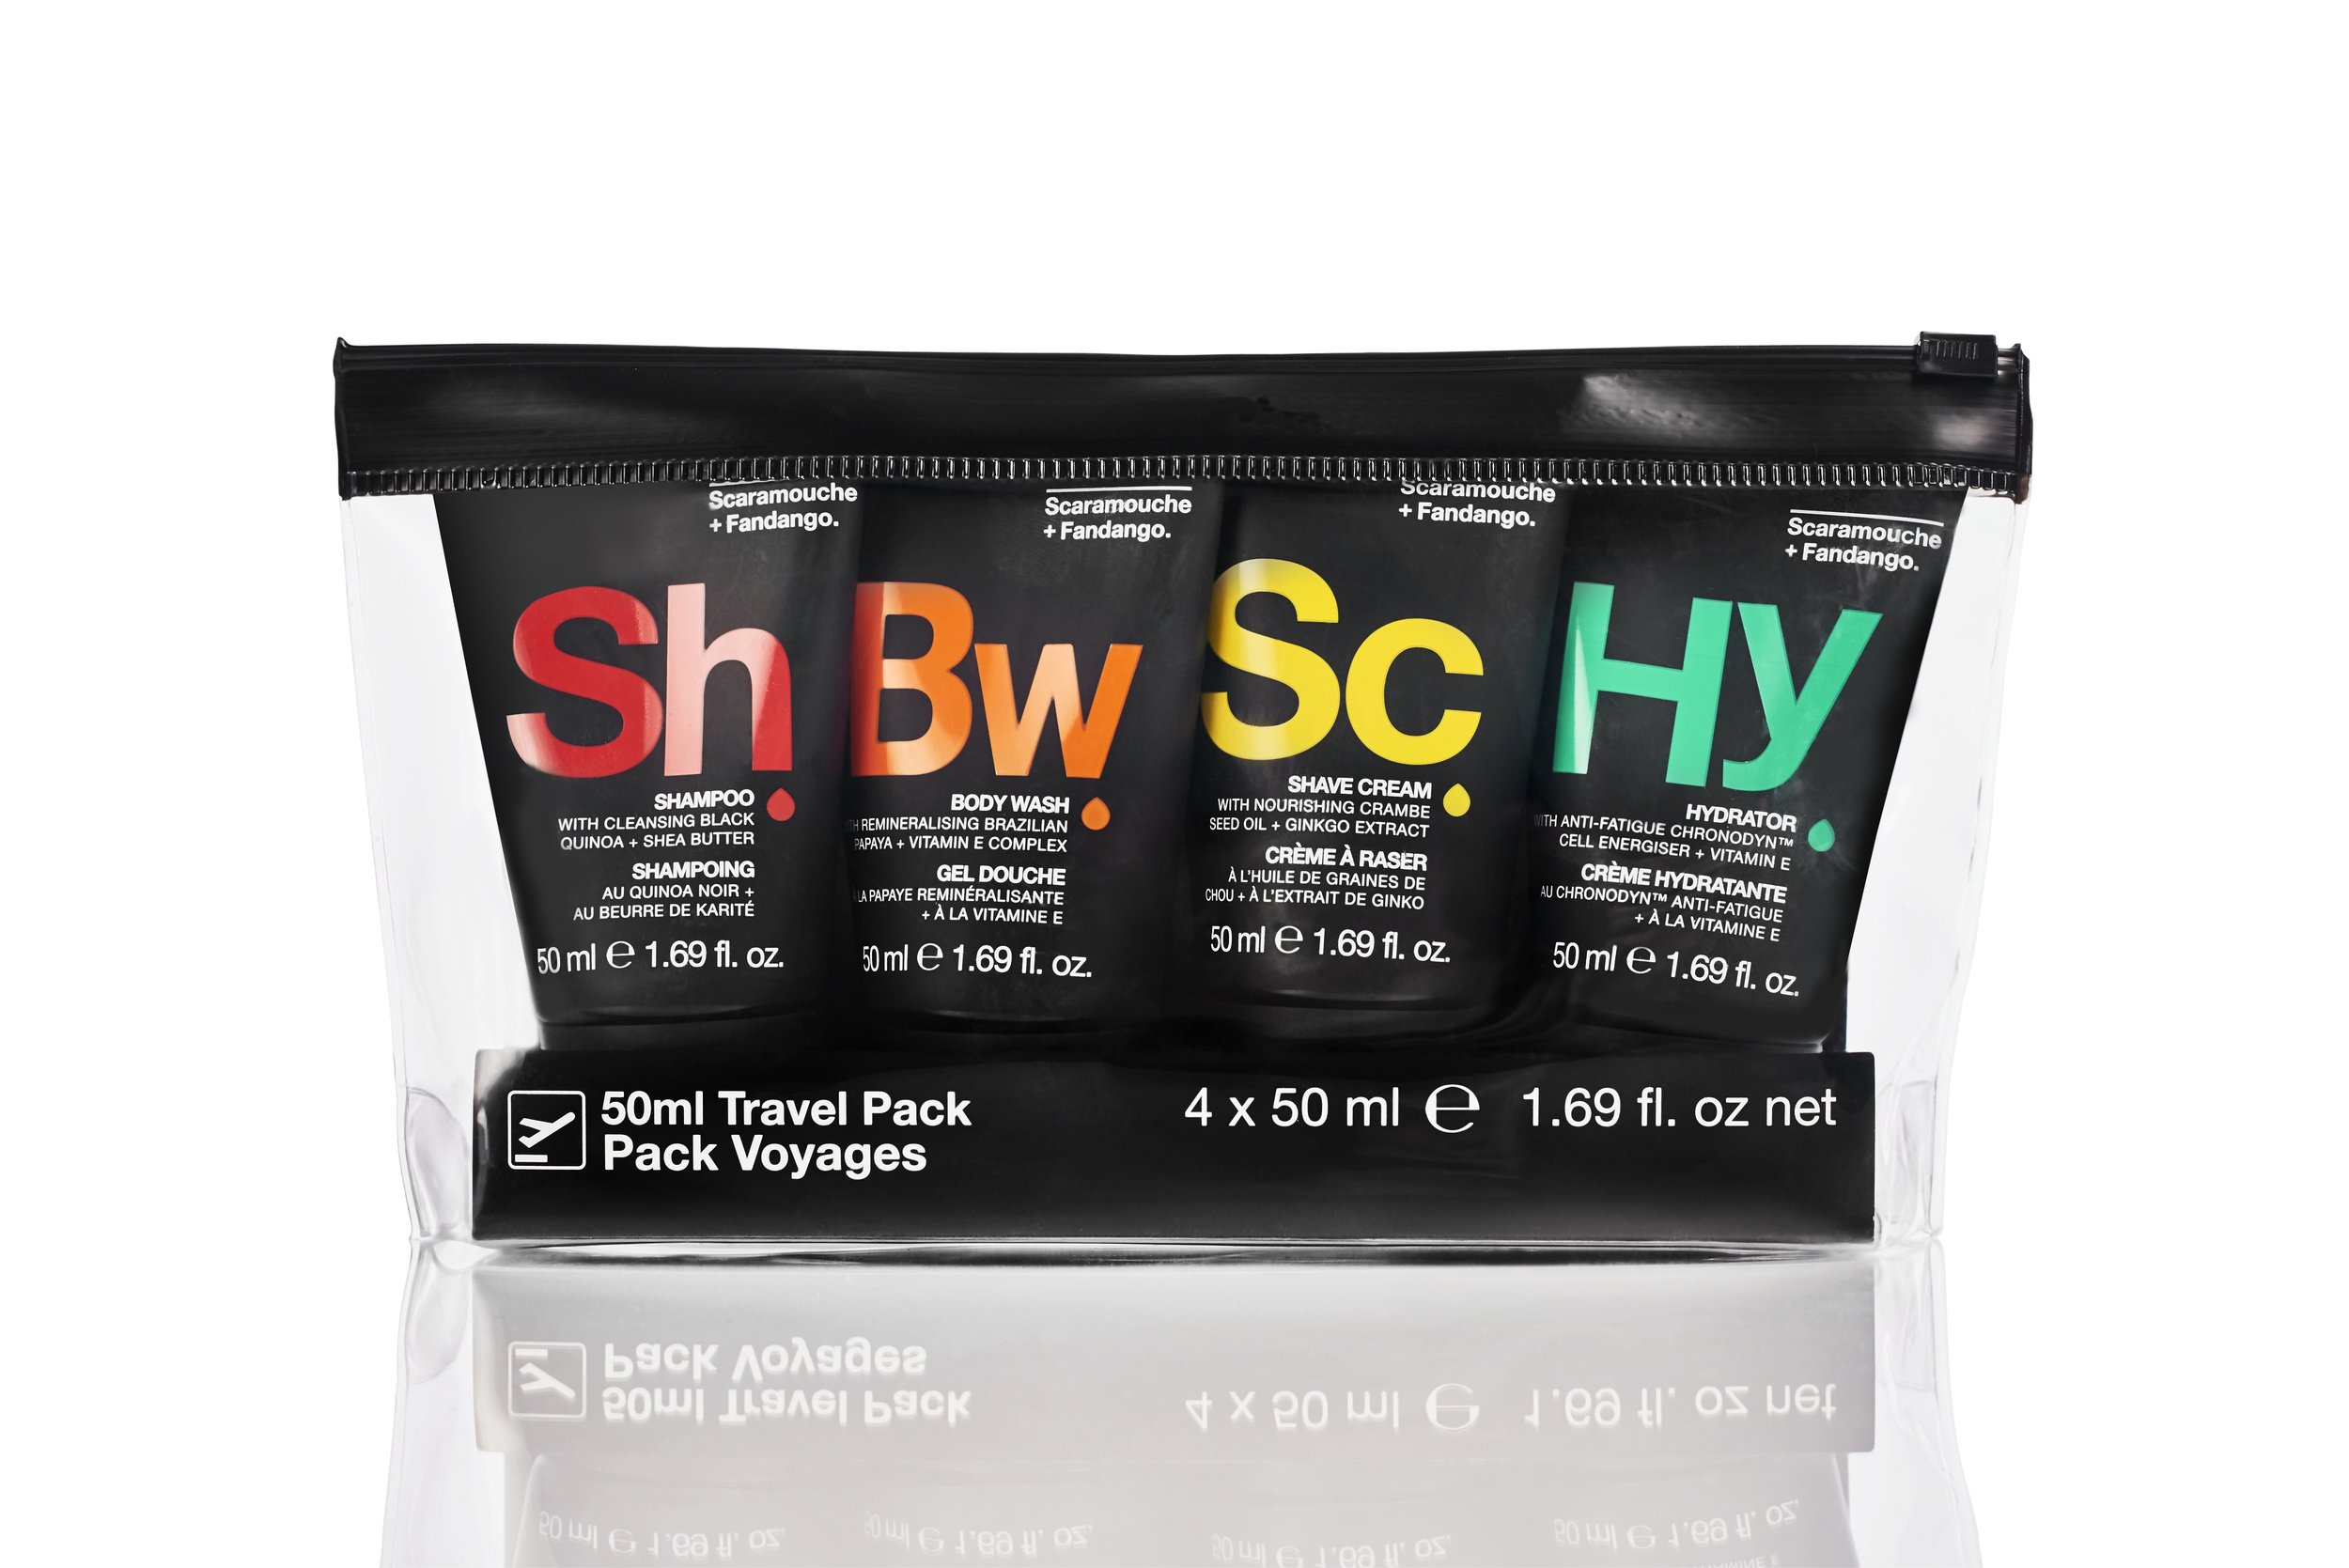 Scaramouche + Fandango - Body and skincare essentials in travel friendly sizes packaged in a handy pouch. The set includes a Shampoo, Body wash, Shave cream and Hydrator all in 50ml sizes.